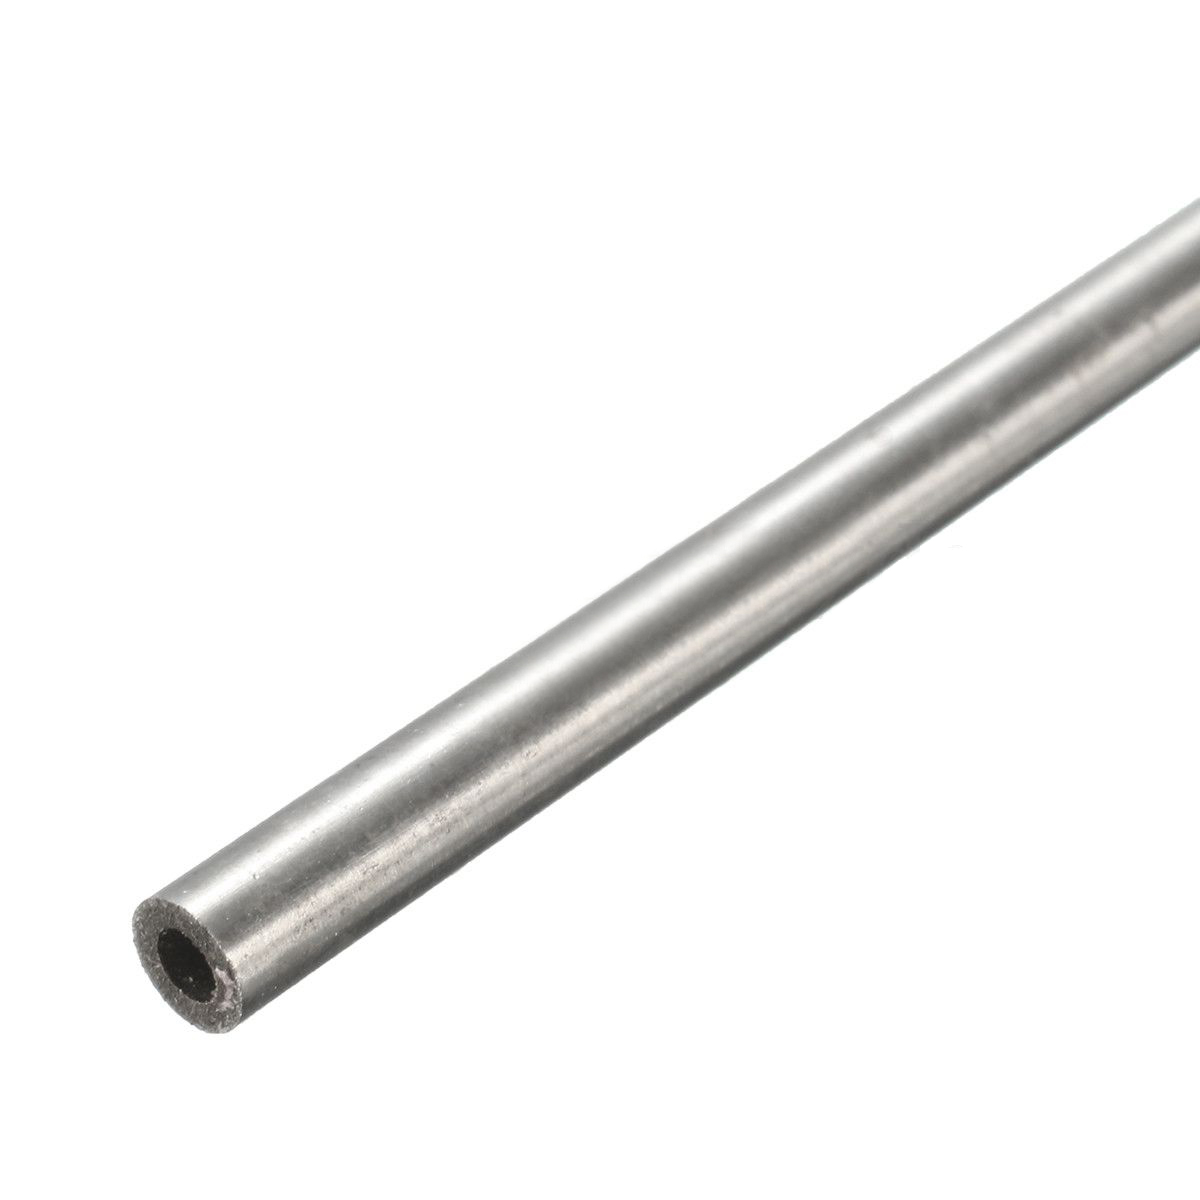 Image 5 - 1pc Stainless Seamless Steel Tube Silver Capillary Round Pipe 4mmx2mmx250mm Mayitr-in Tool Parts from Tools